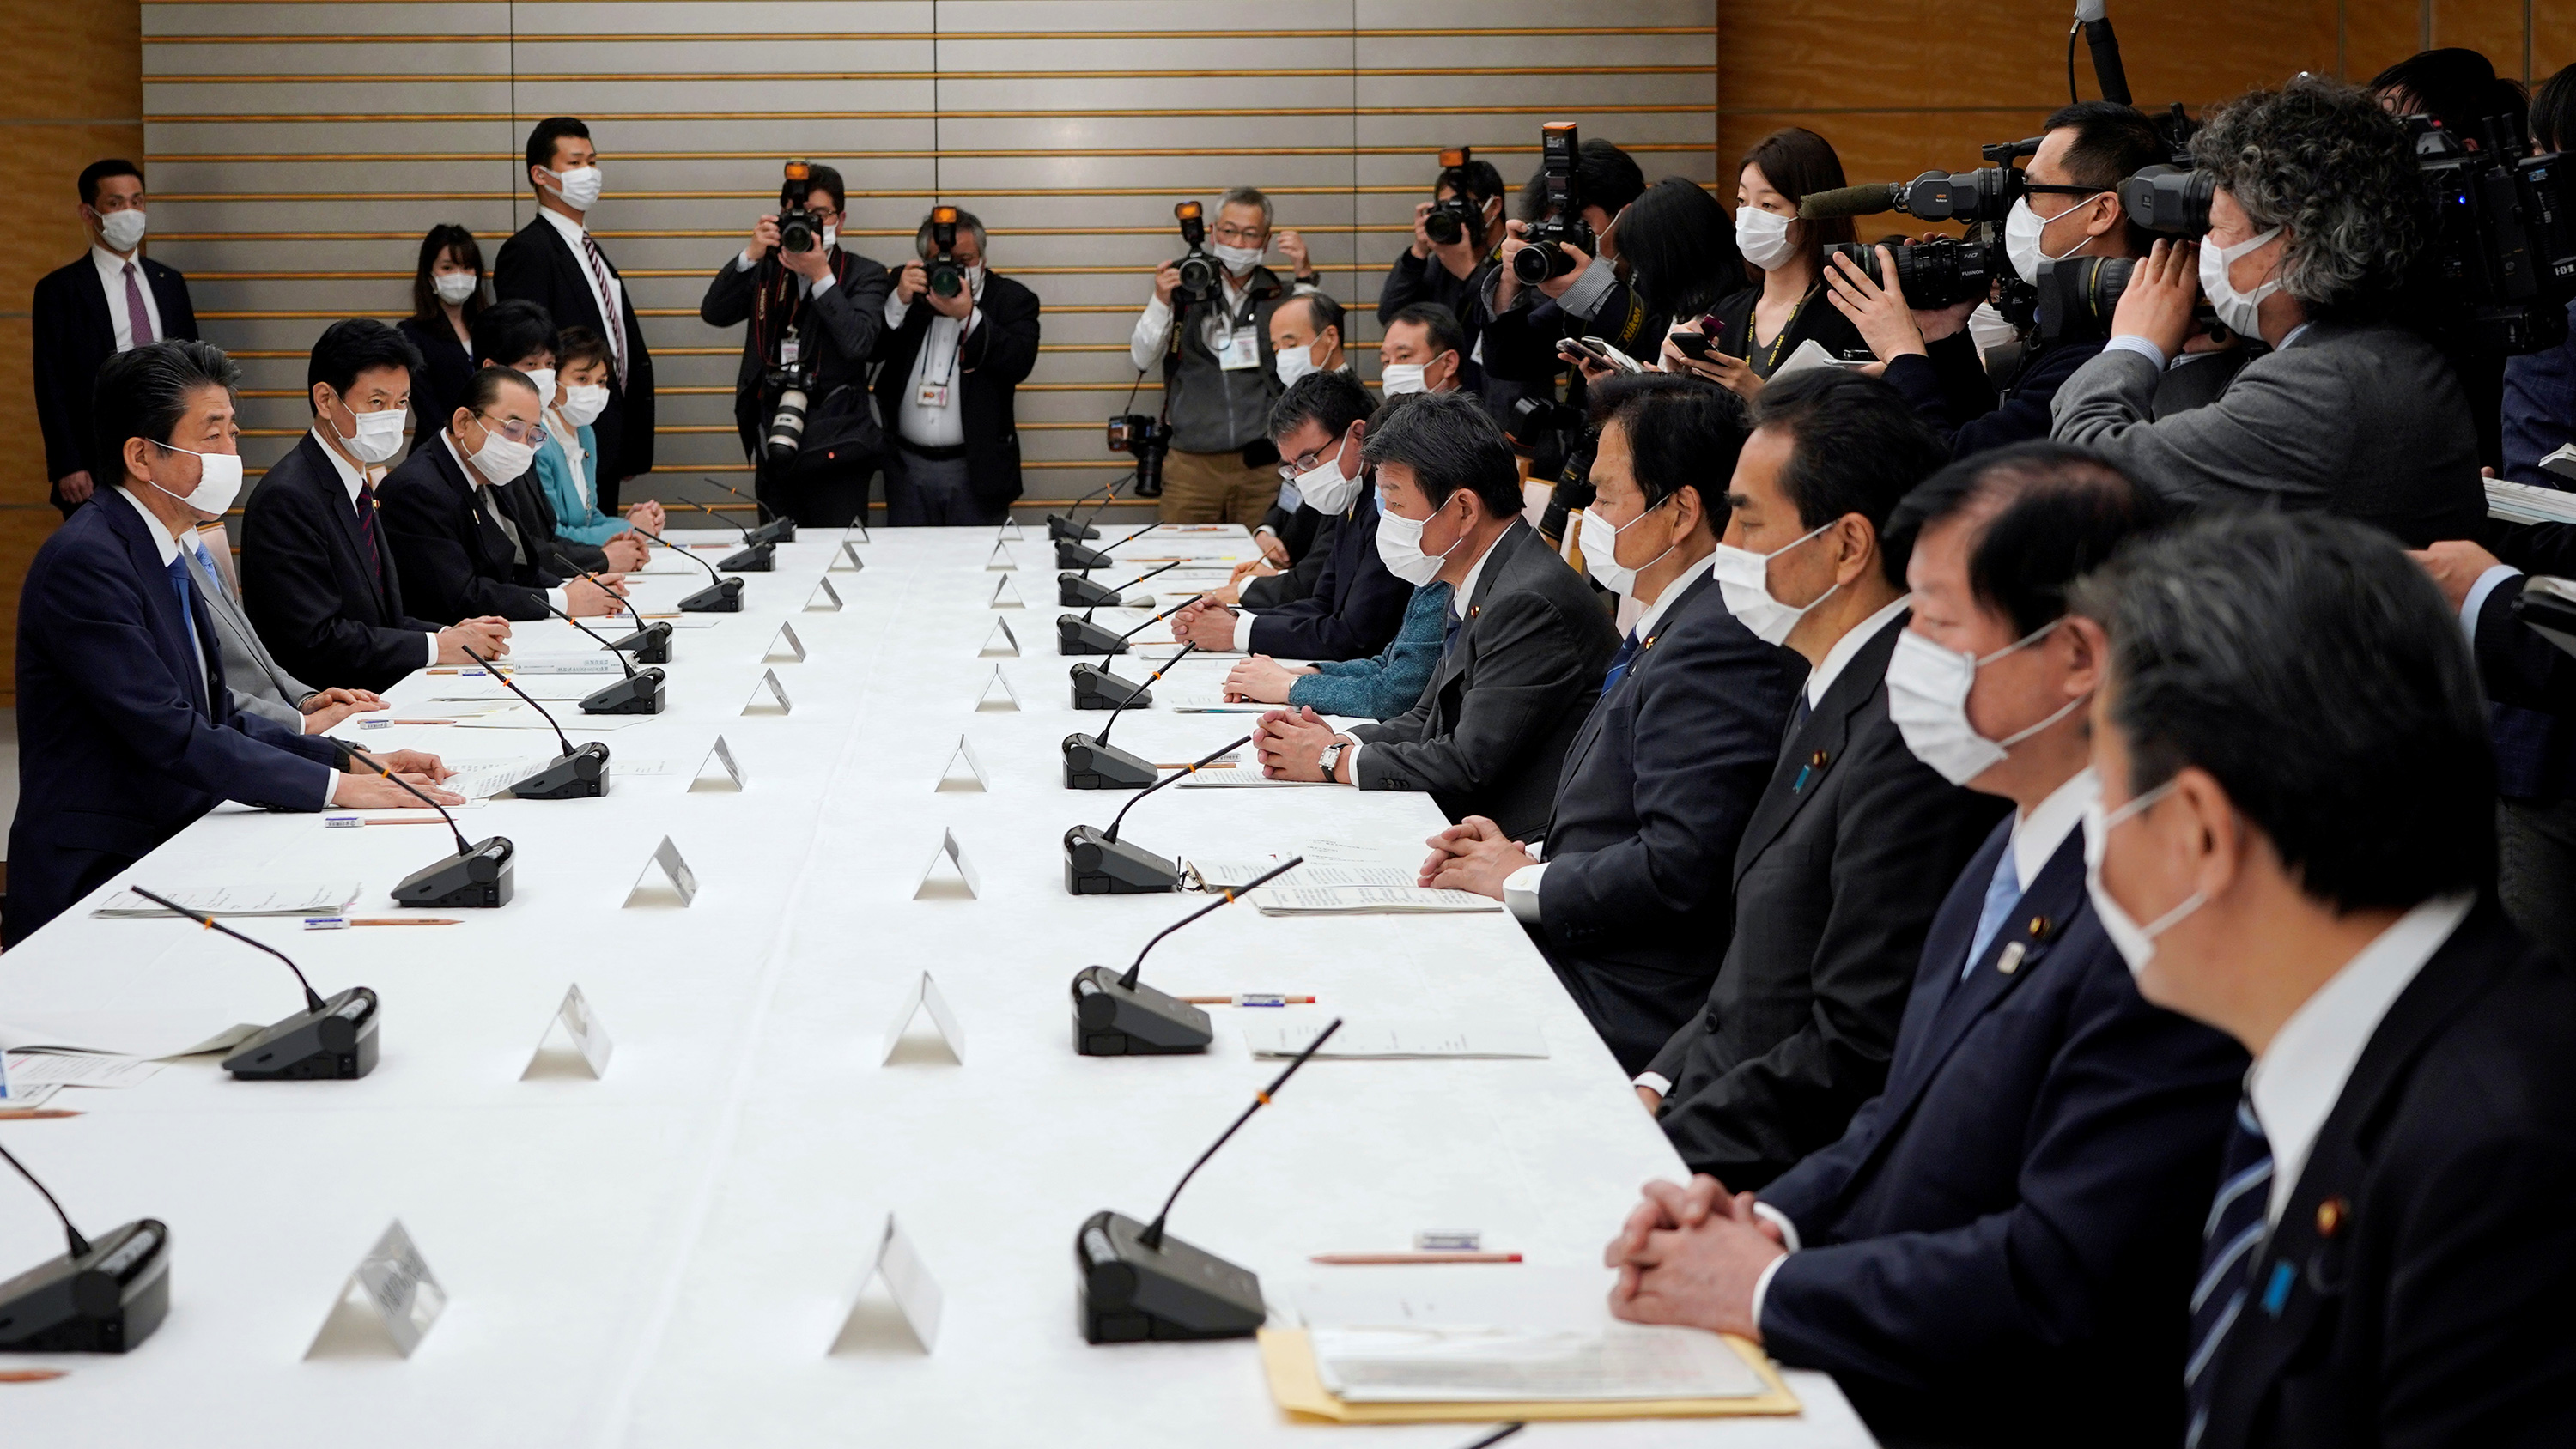 The photo shows the PM and a number of government ministers sitting around a large table. Reporters are seen at the edge of the frame snapping photos. Everyone in the picture is wearing a mask.